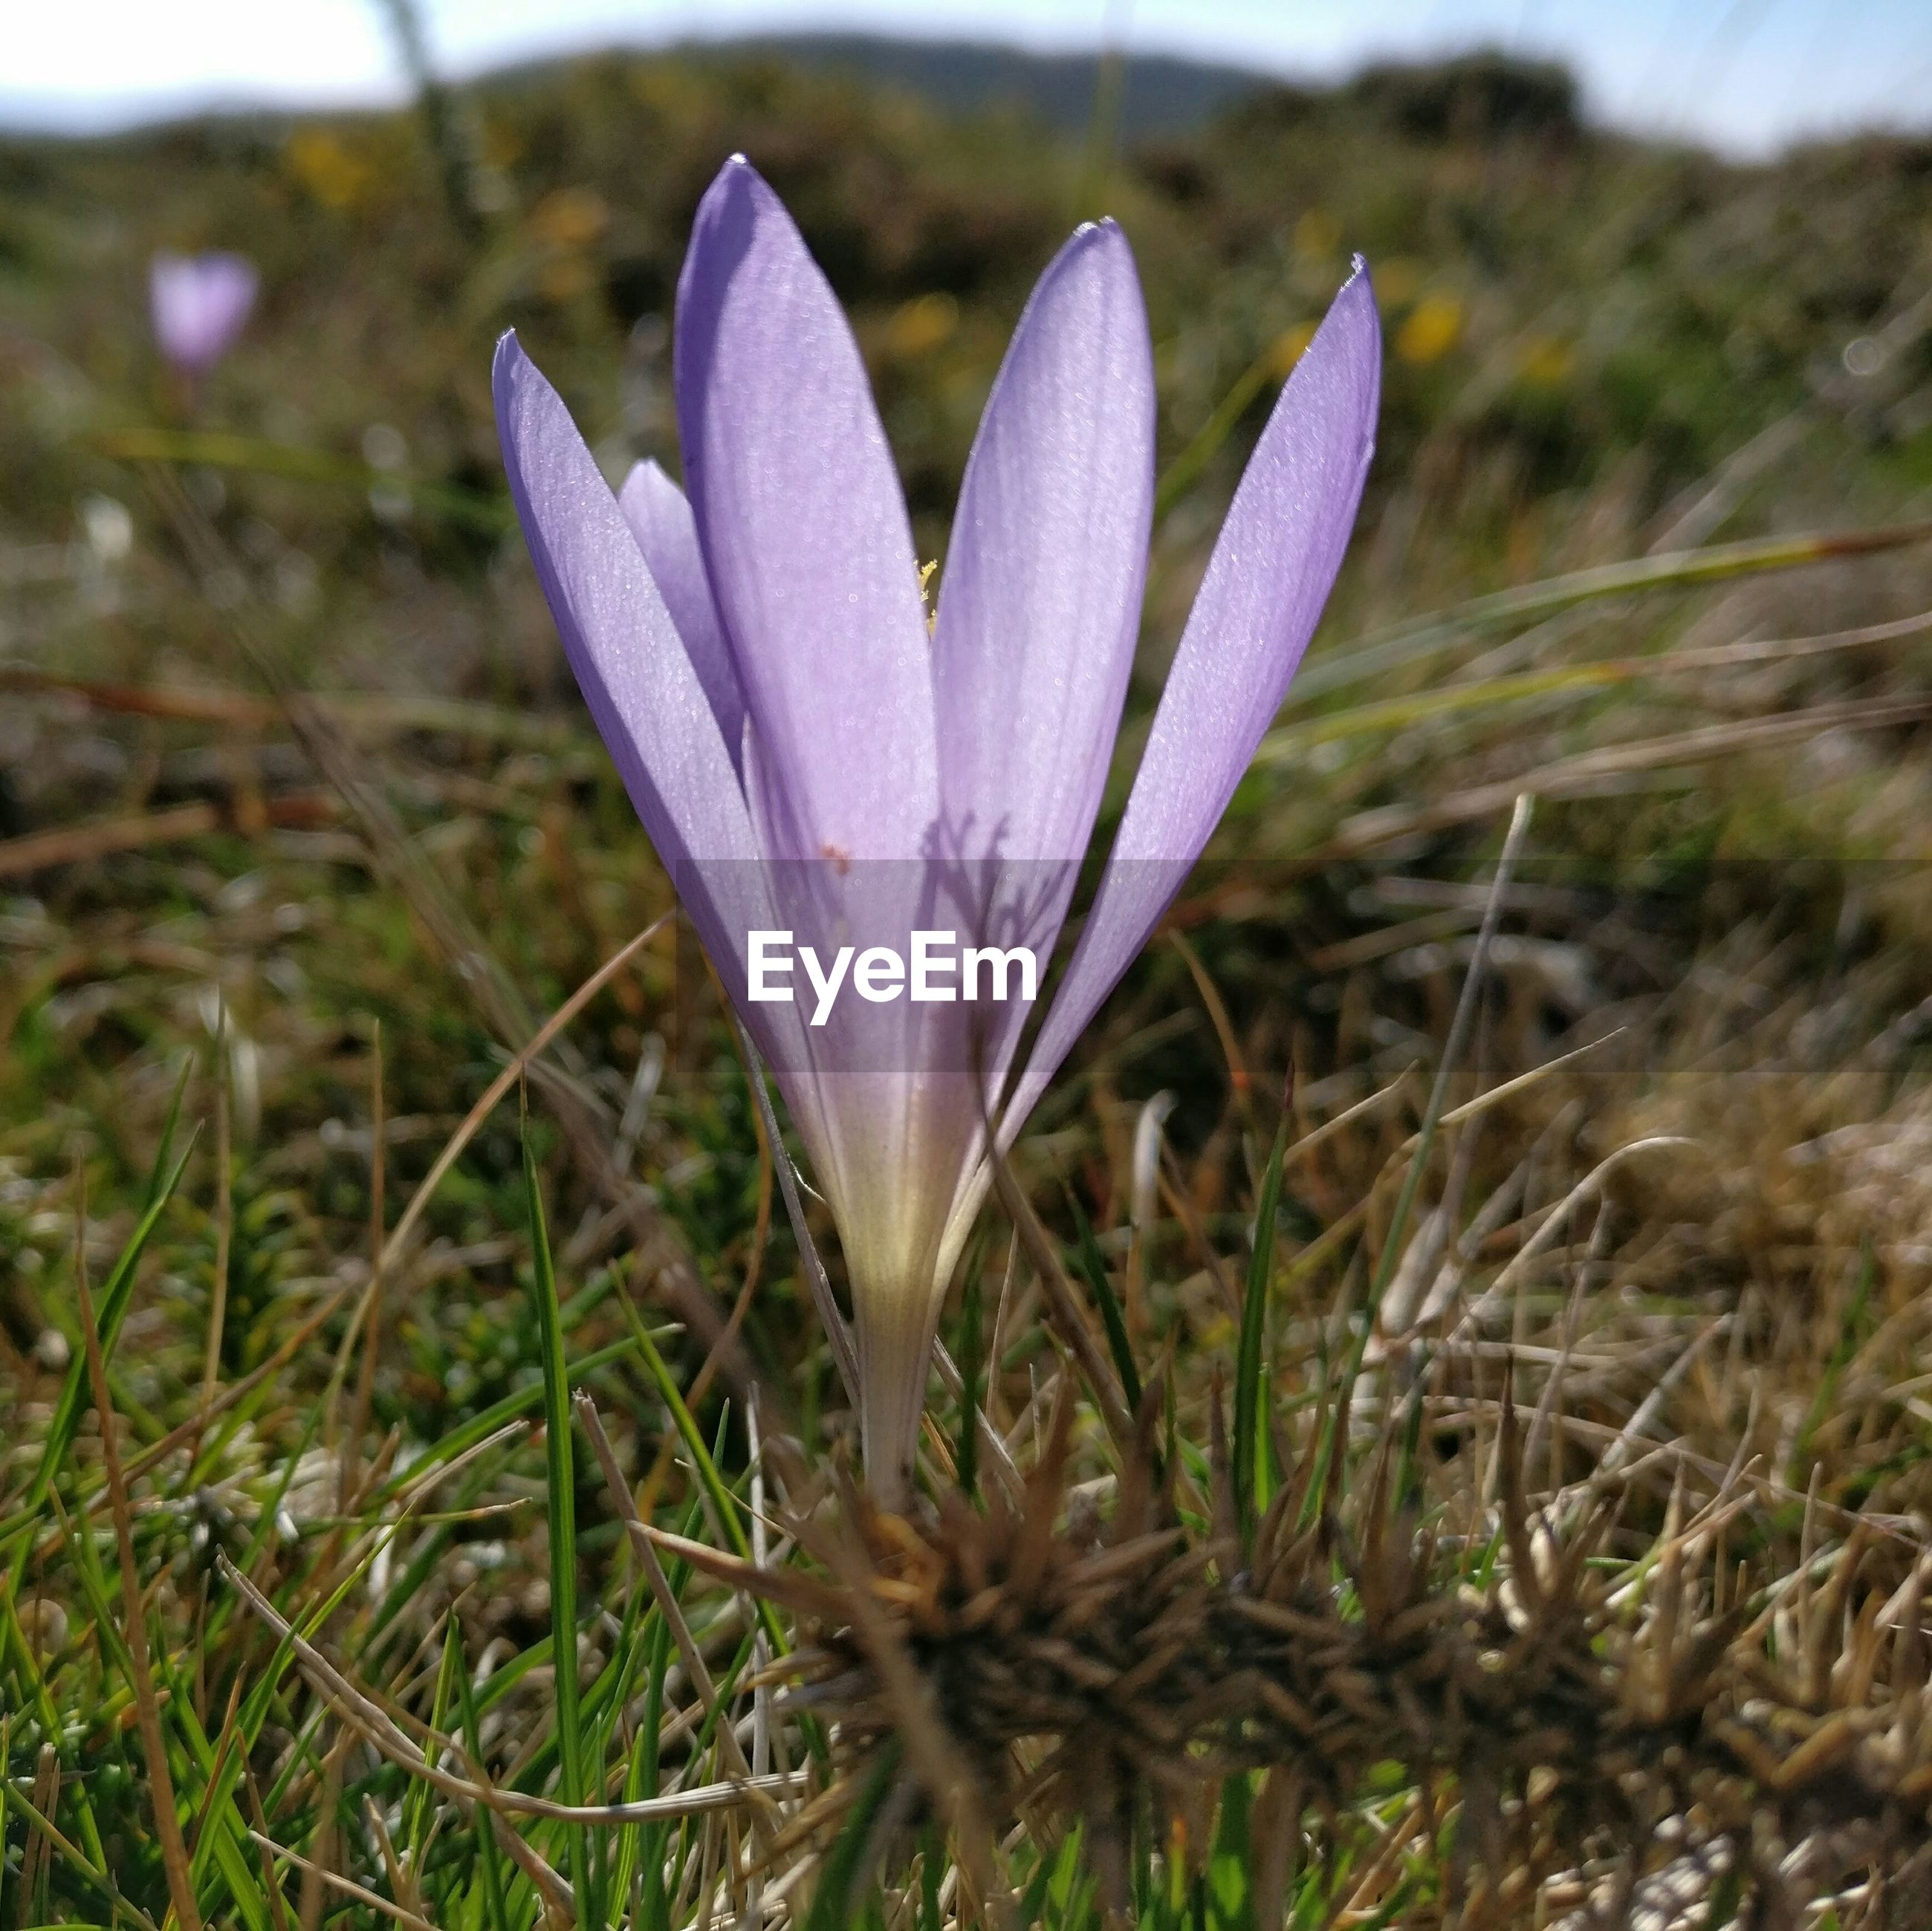 CLOSE-UP OF PURPLE FLOWER GROWING ON FIELD